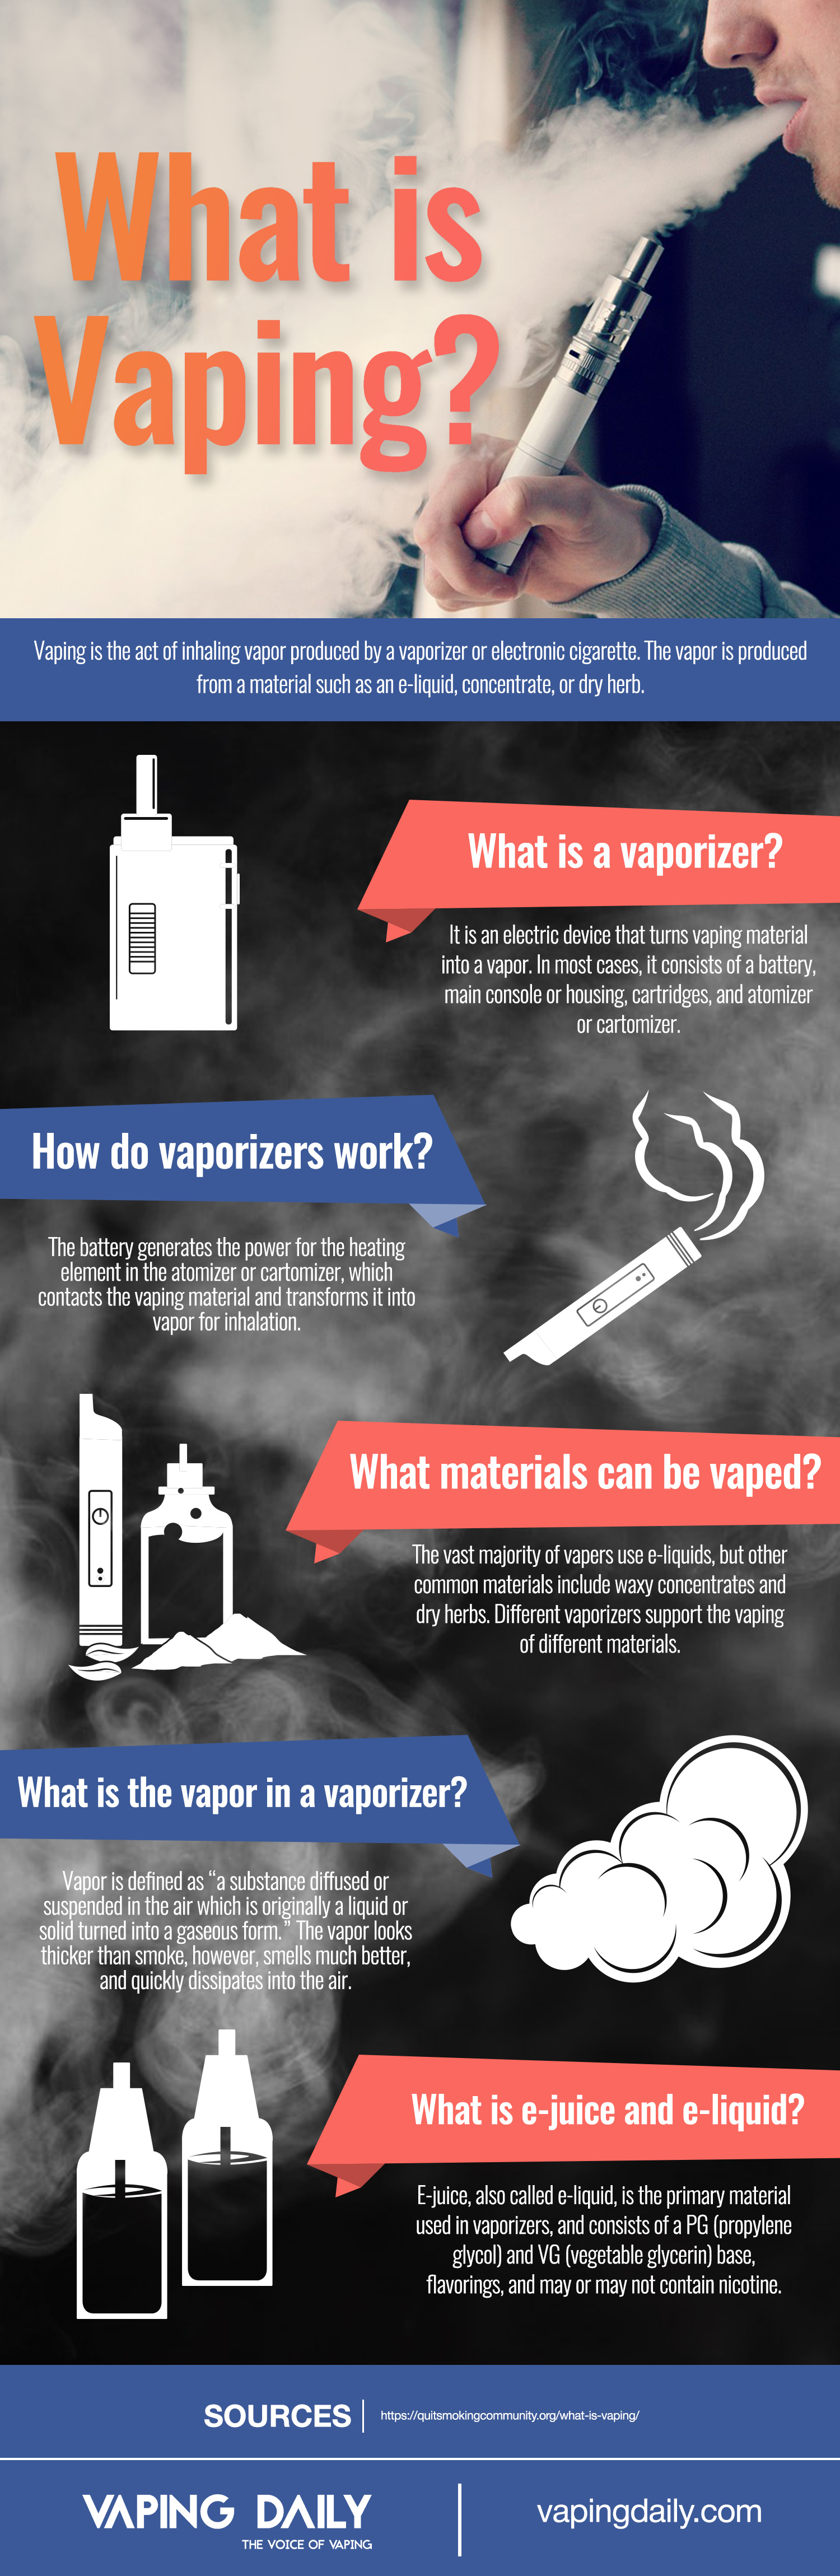 What-is-Vaping-infographic-lkrllc